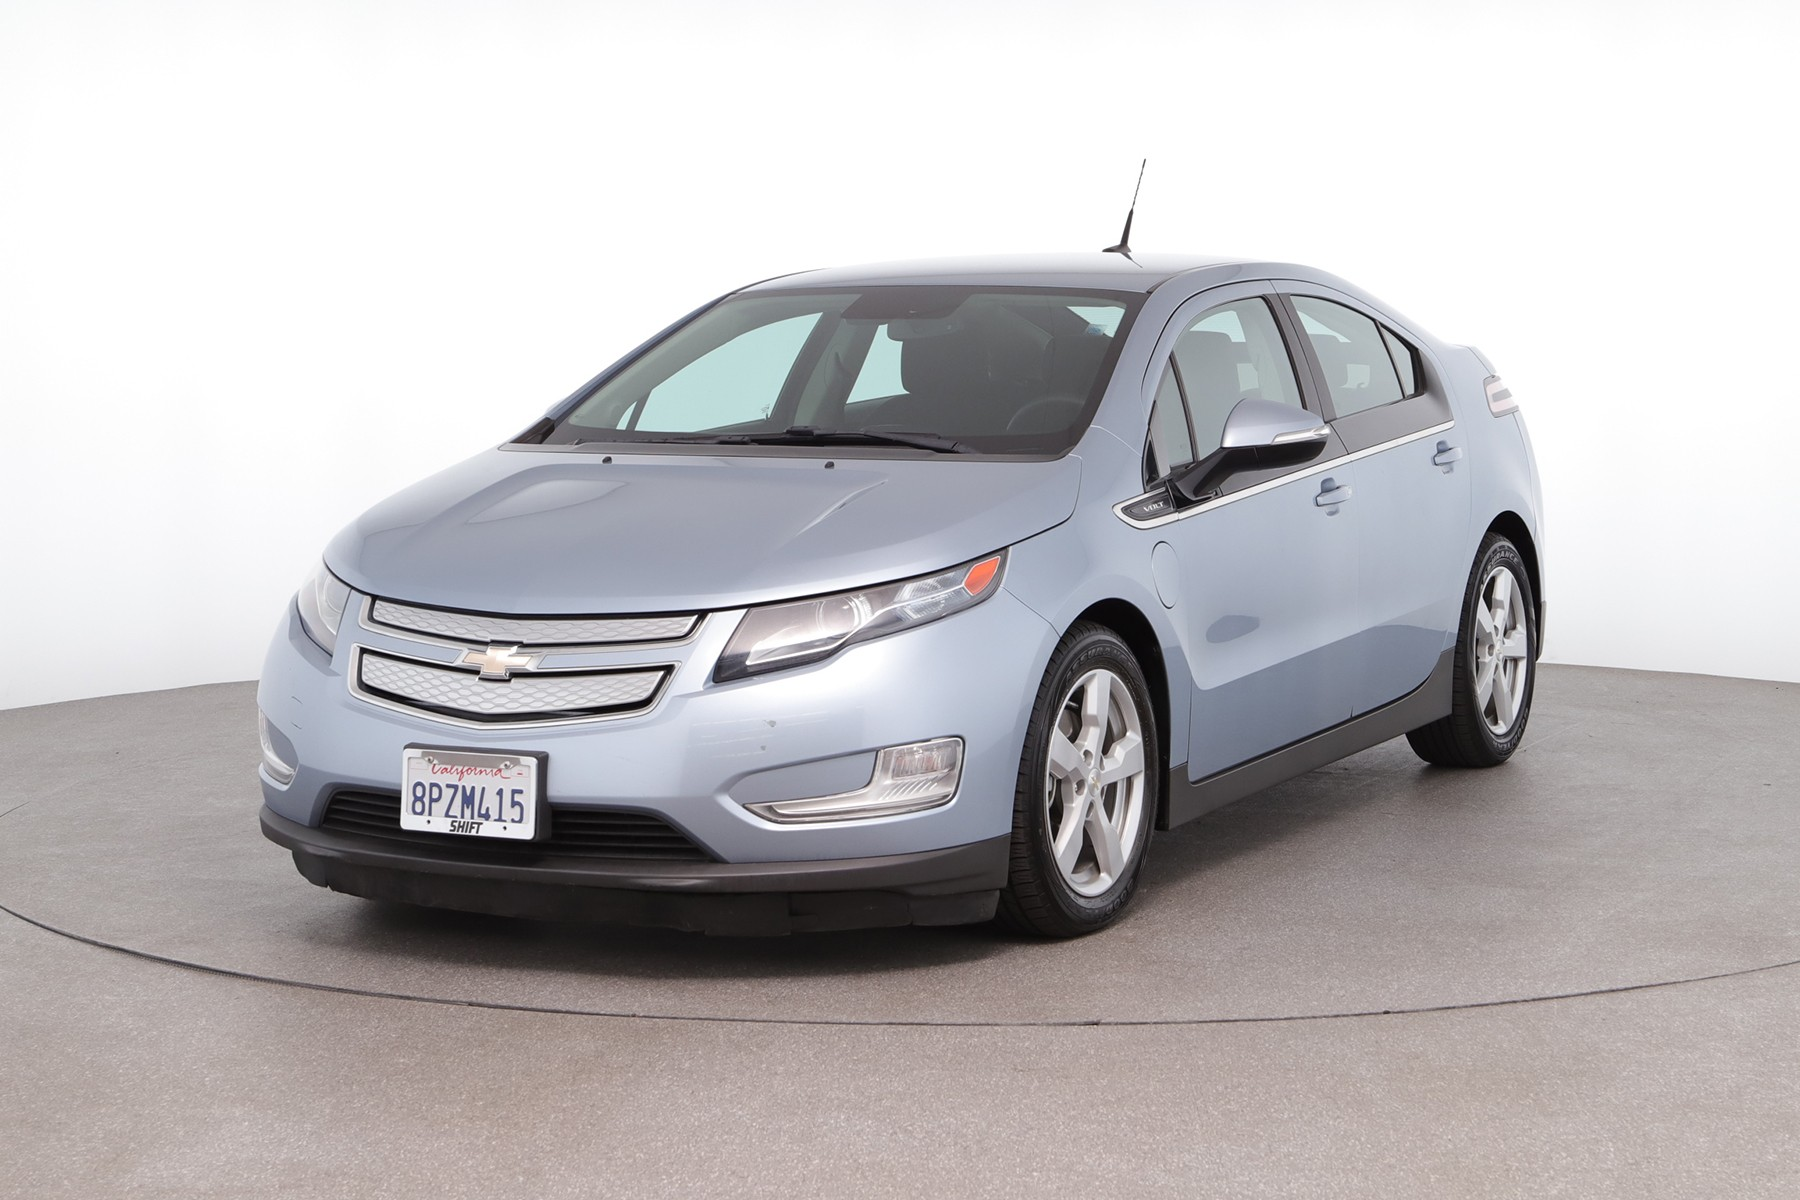 2013 Chevrolet Volt (from $11,000)